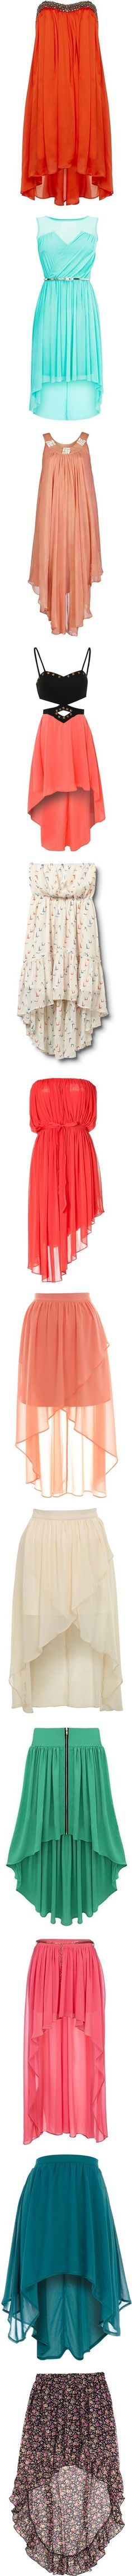 """High Low Dresses & Skirts"" by supergracieloo ❤ liked on Polyvore @alexastarr"